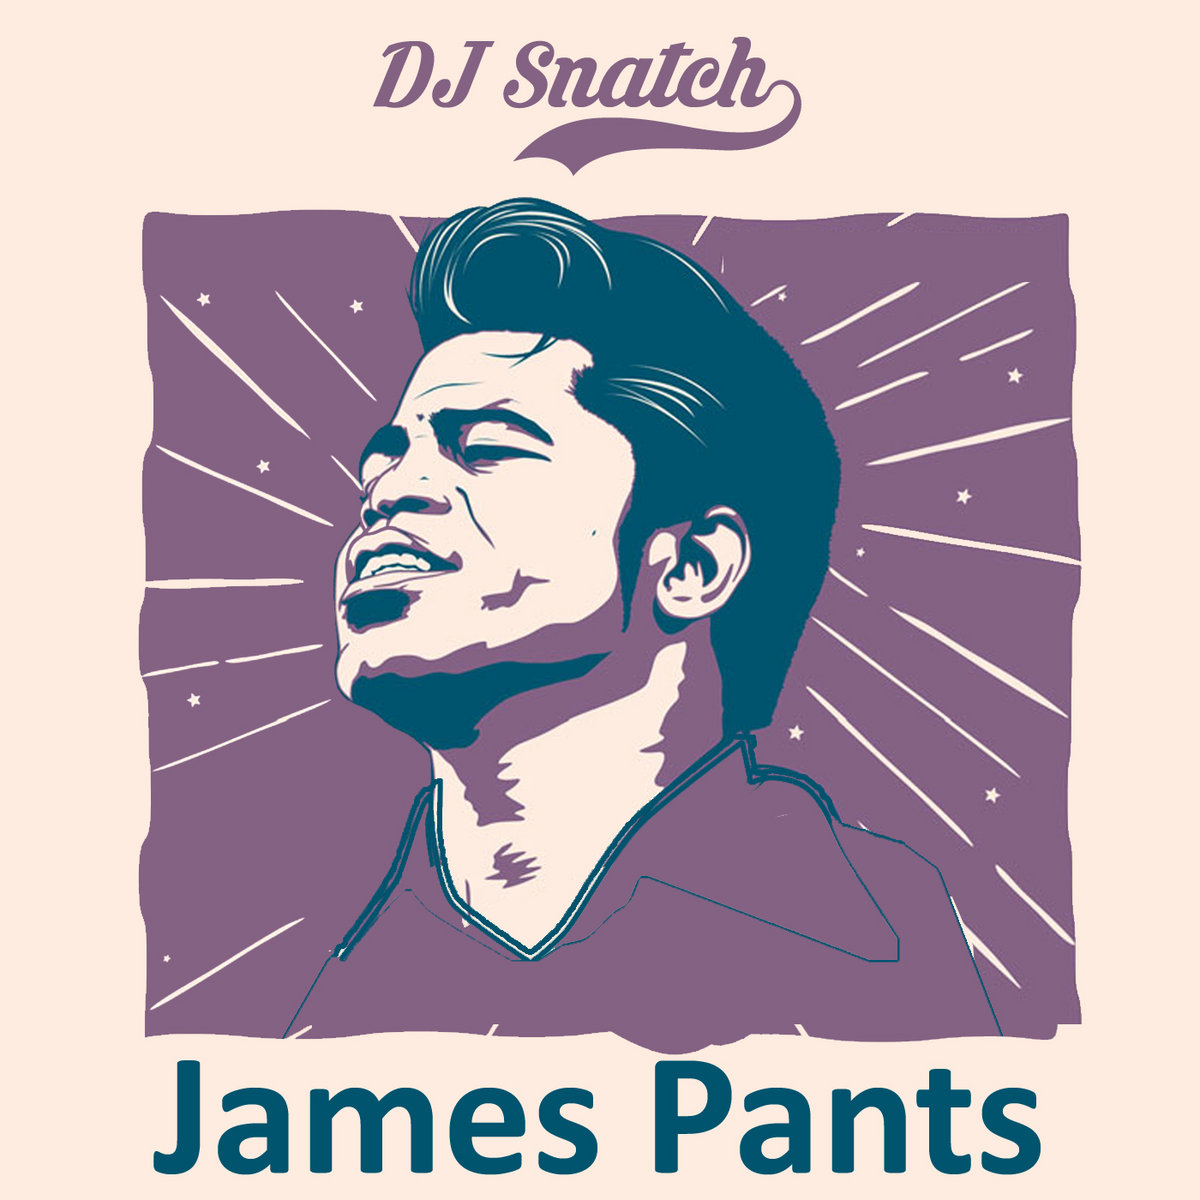 DJ Snatch - James Pants | DJ Snatch